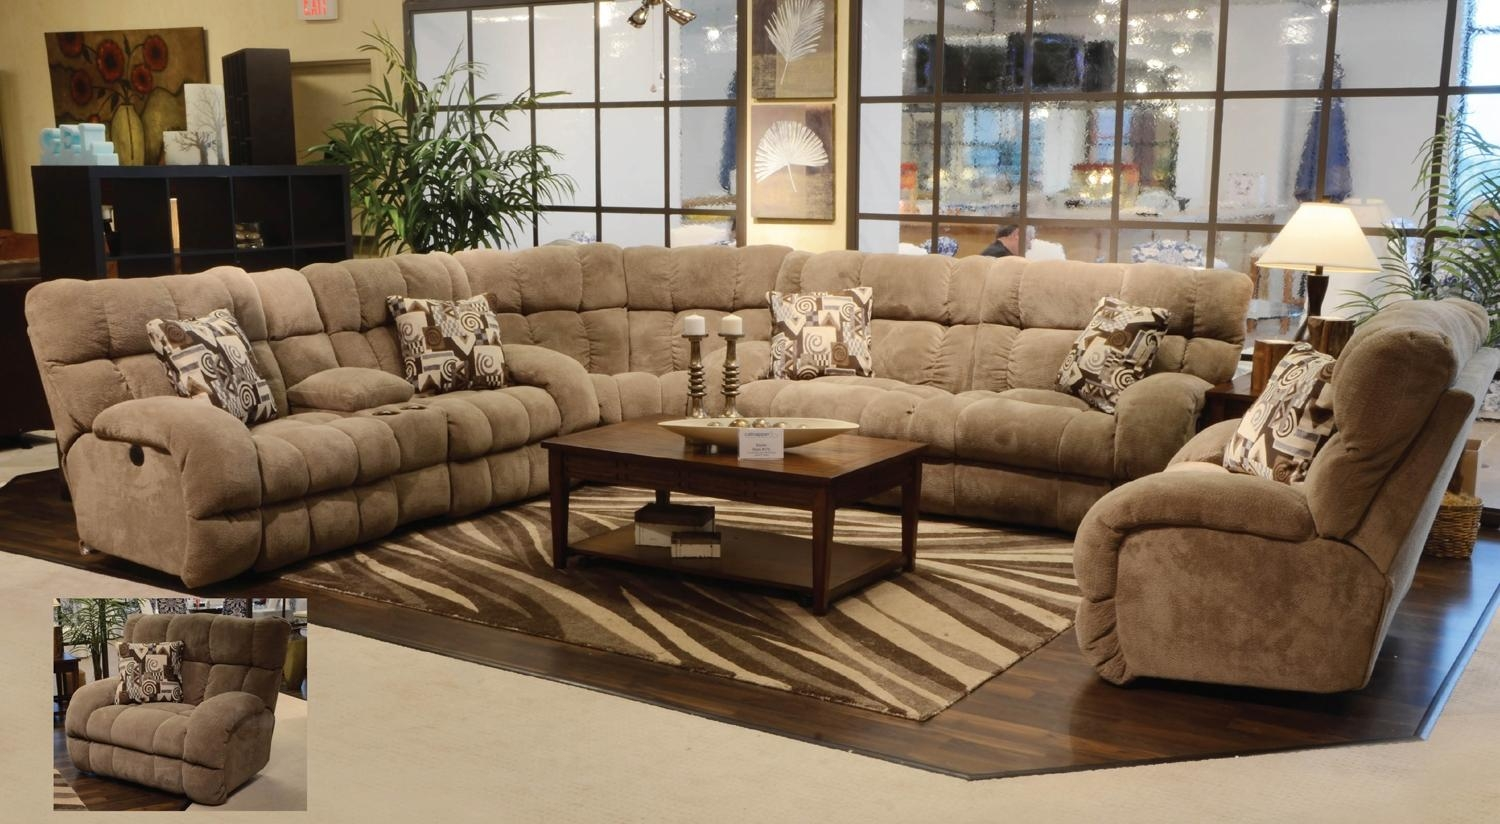 Sofas Center : Extra Large Sectional Sofa With Chaiselarge Sofas Throughout Extra Large Sectional Sofas (View 4 of 15)